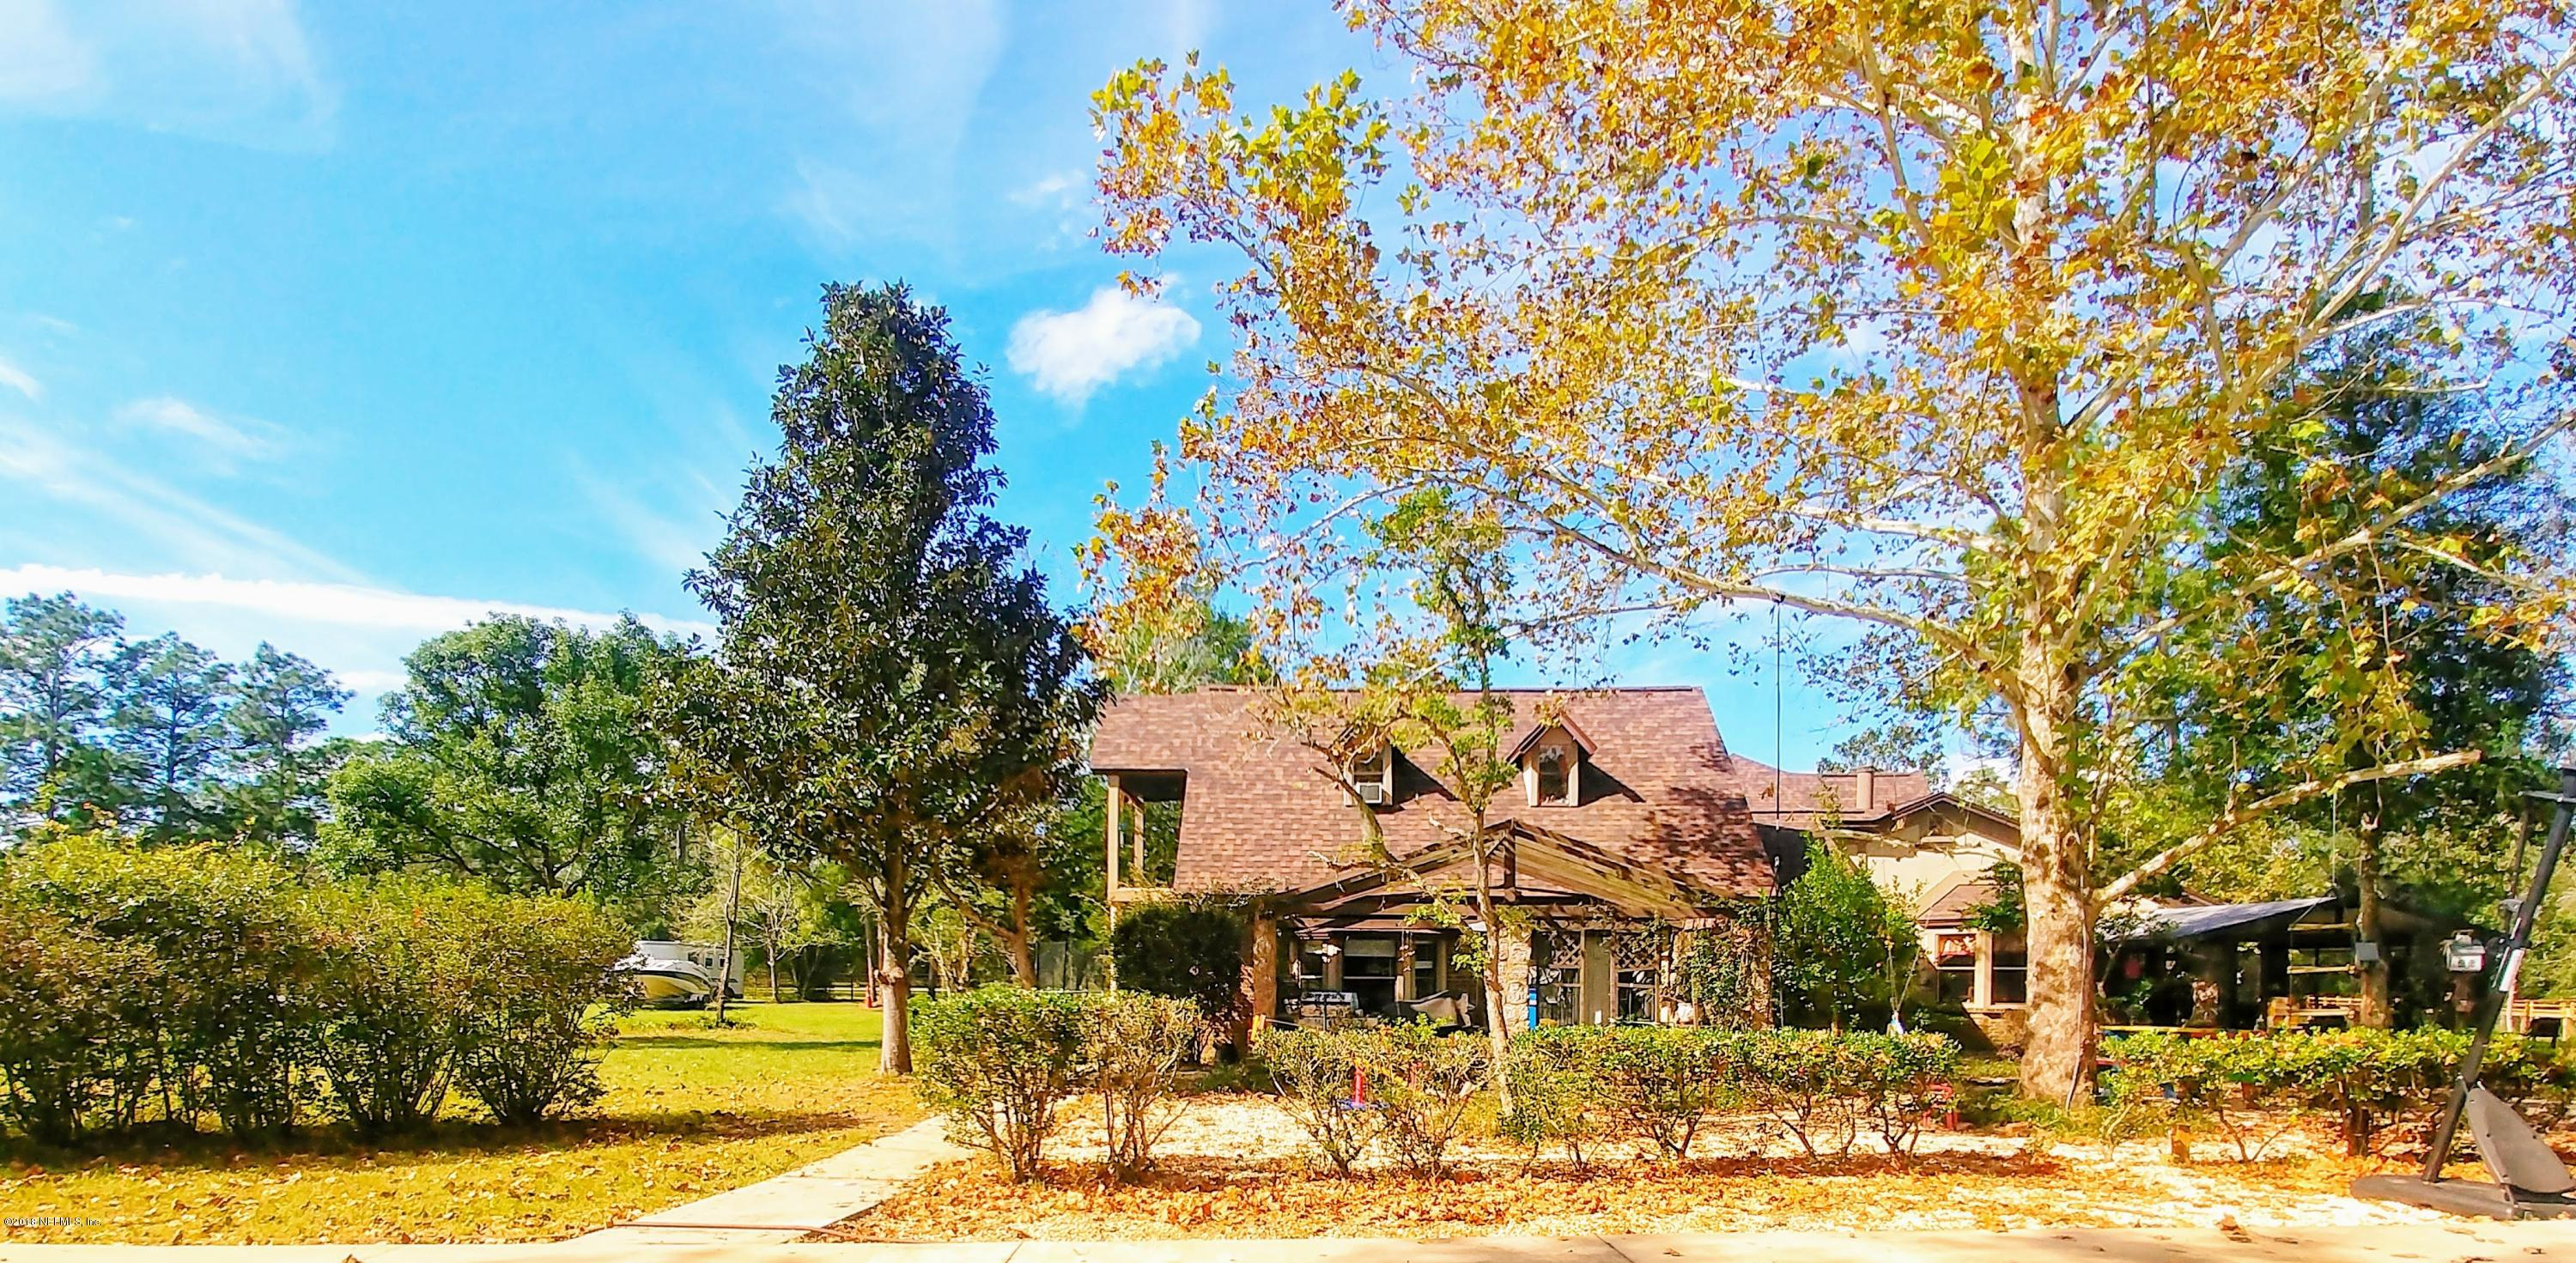 3200 COUNTY ROAD 218, MIDDLEBURG, FLORIDA 32068, 5 Bedrooms Bedrooms, ,4 BathroomsBathrooms,Residential - single family,For sale,COUNTY ROAD 218,967531